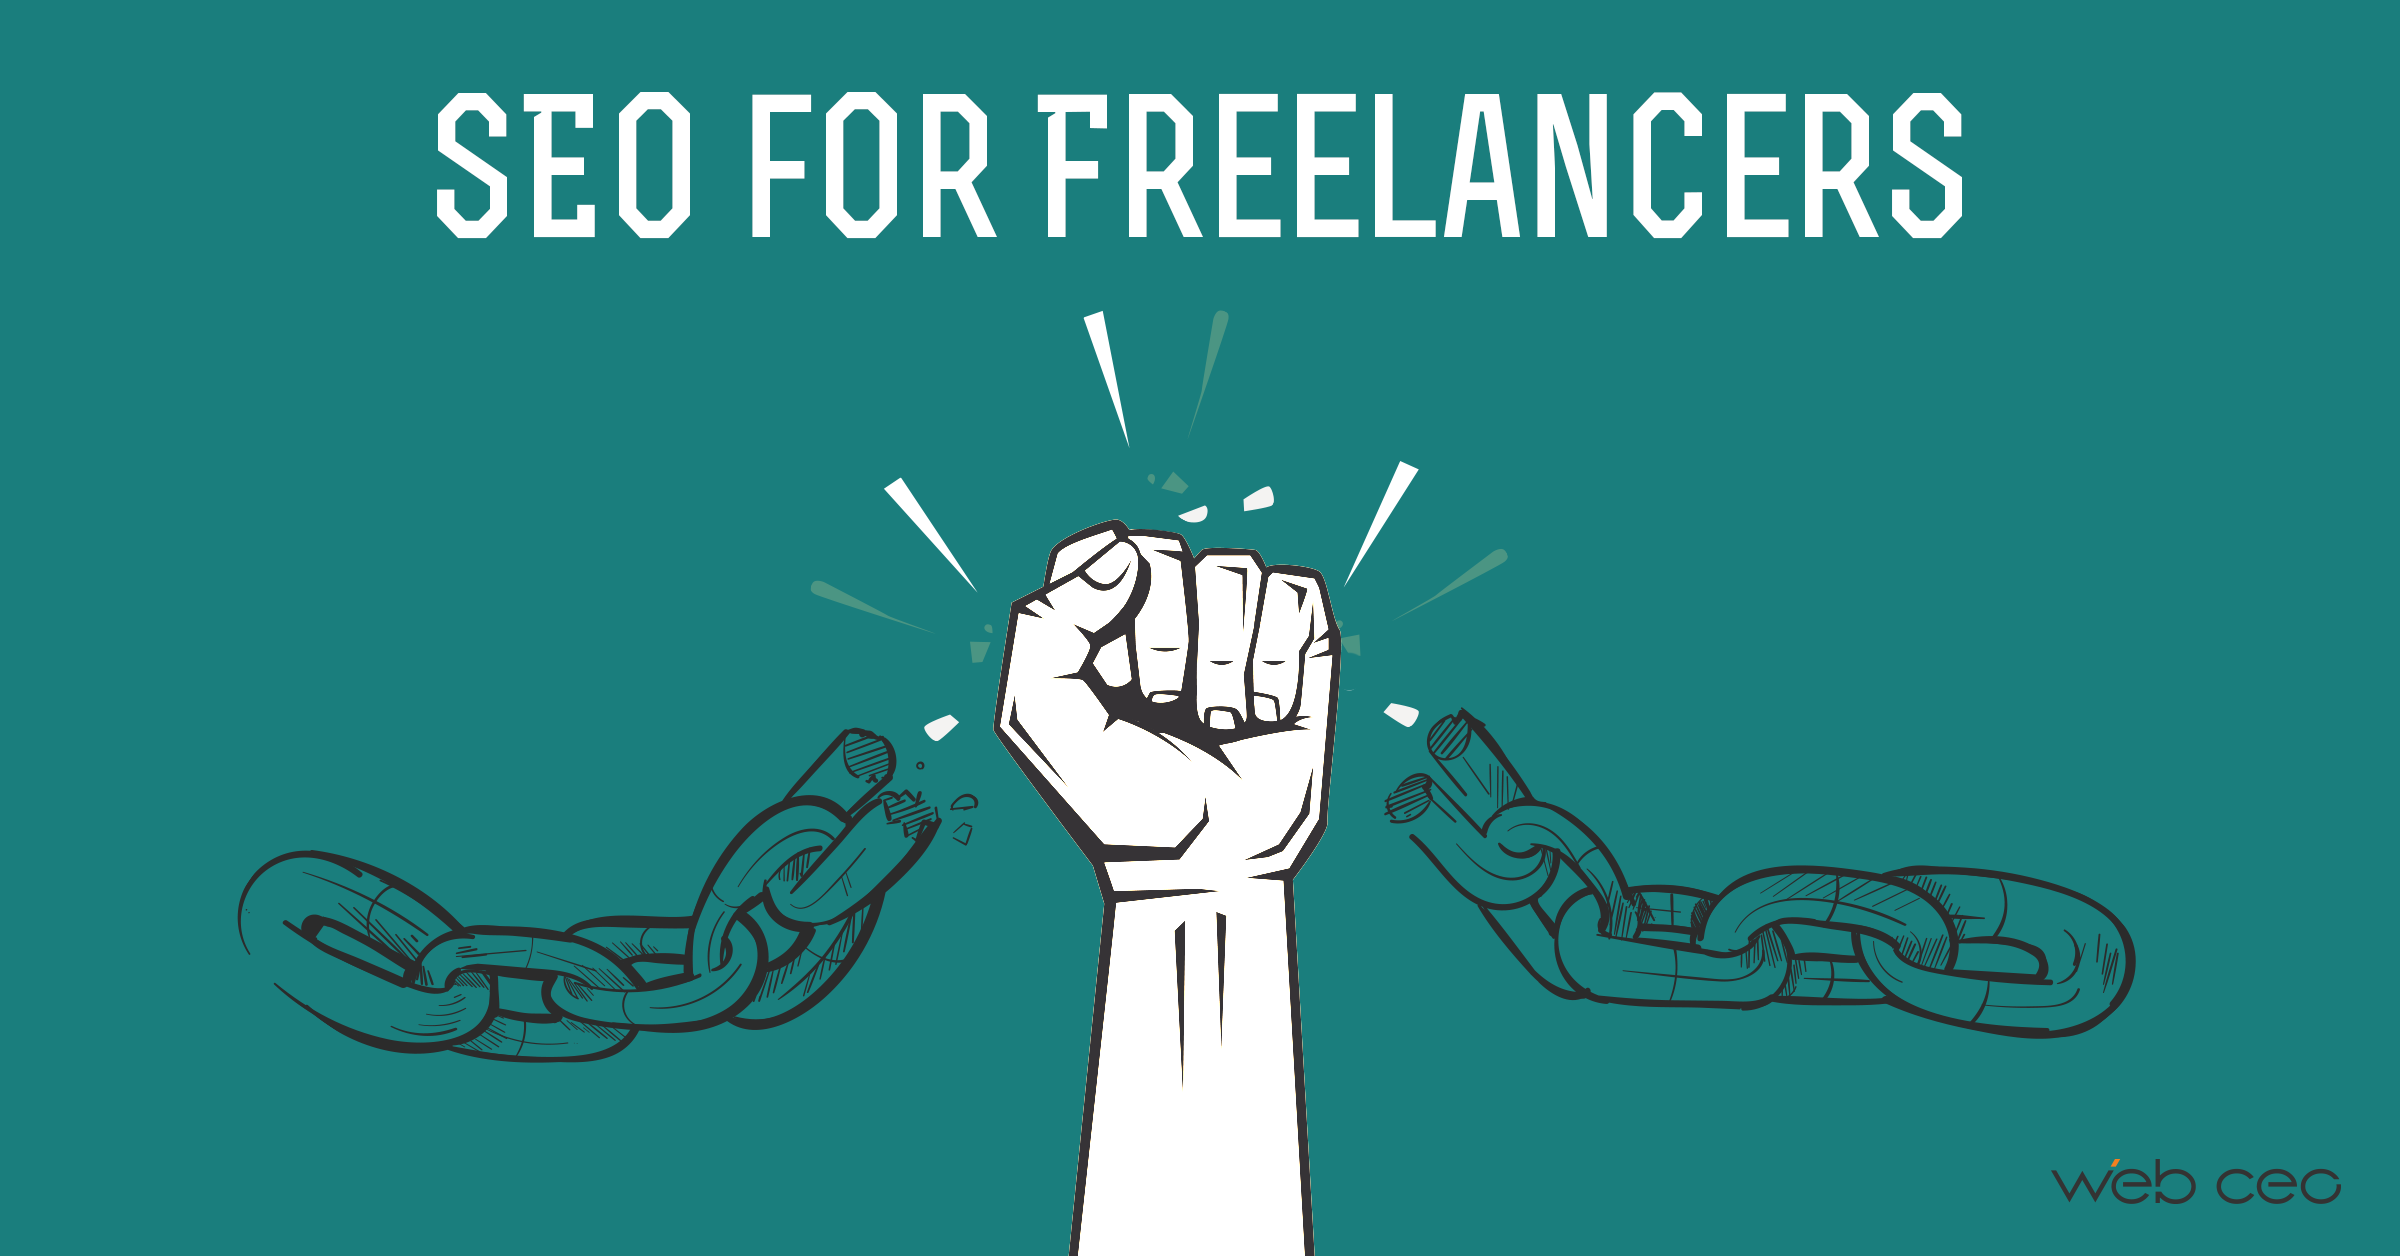 SEO for freelancers guide